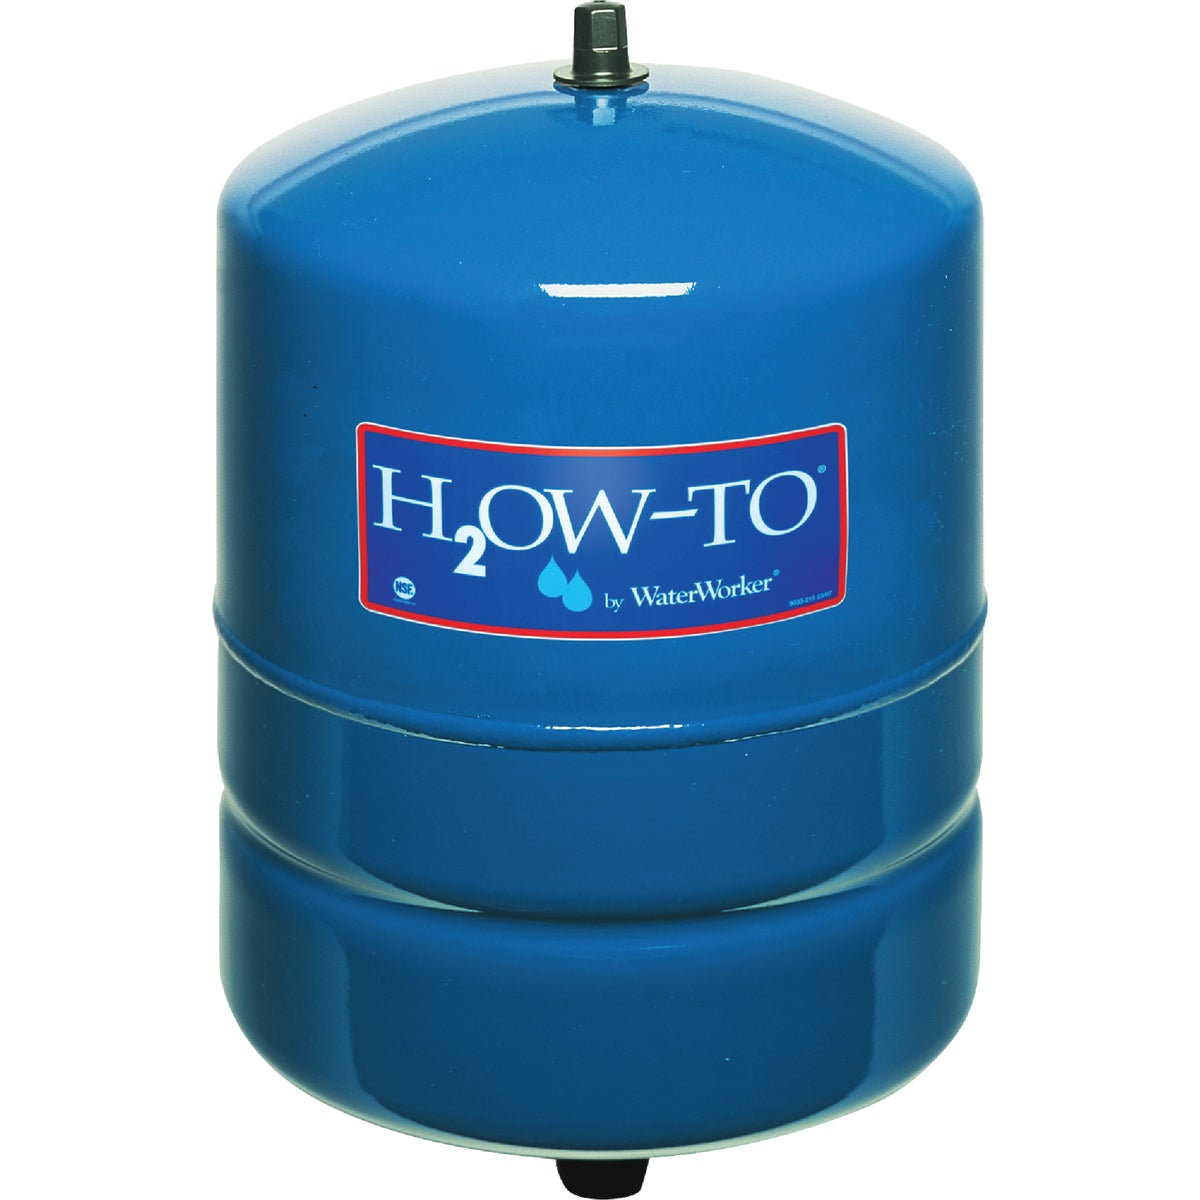 8.6GAL PRESSURE TANK - HT-8.6B by Water Worker